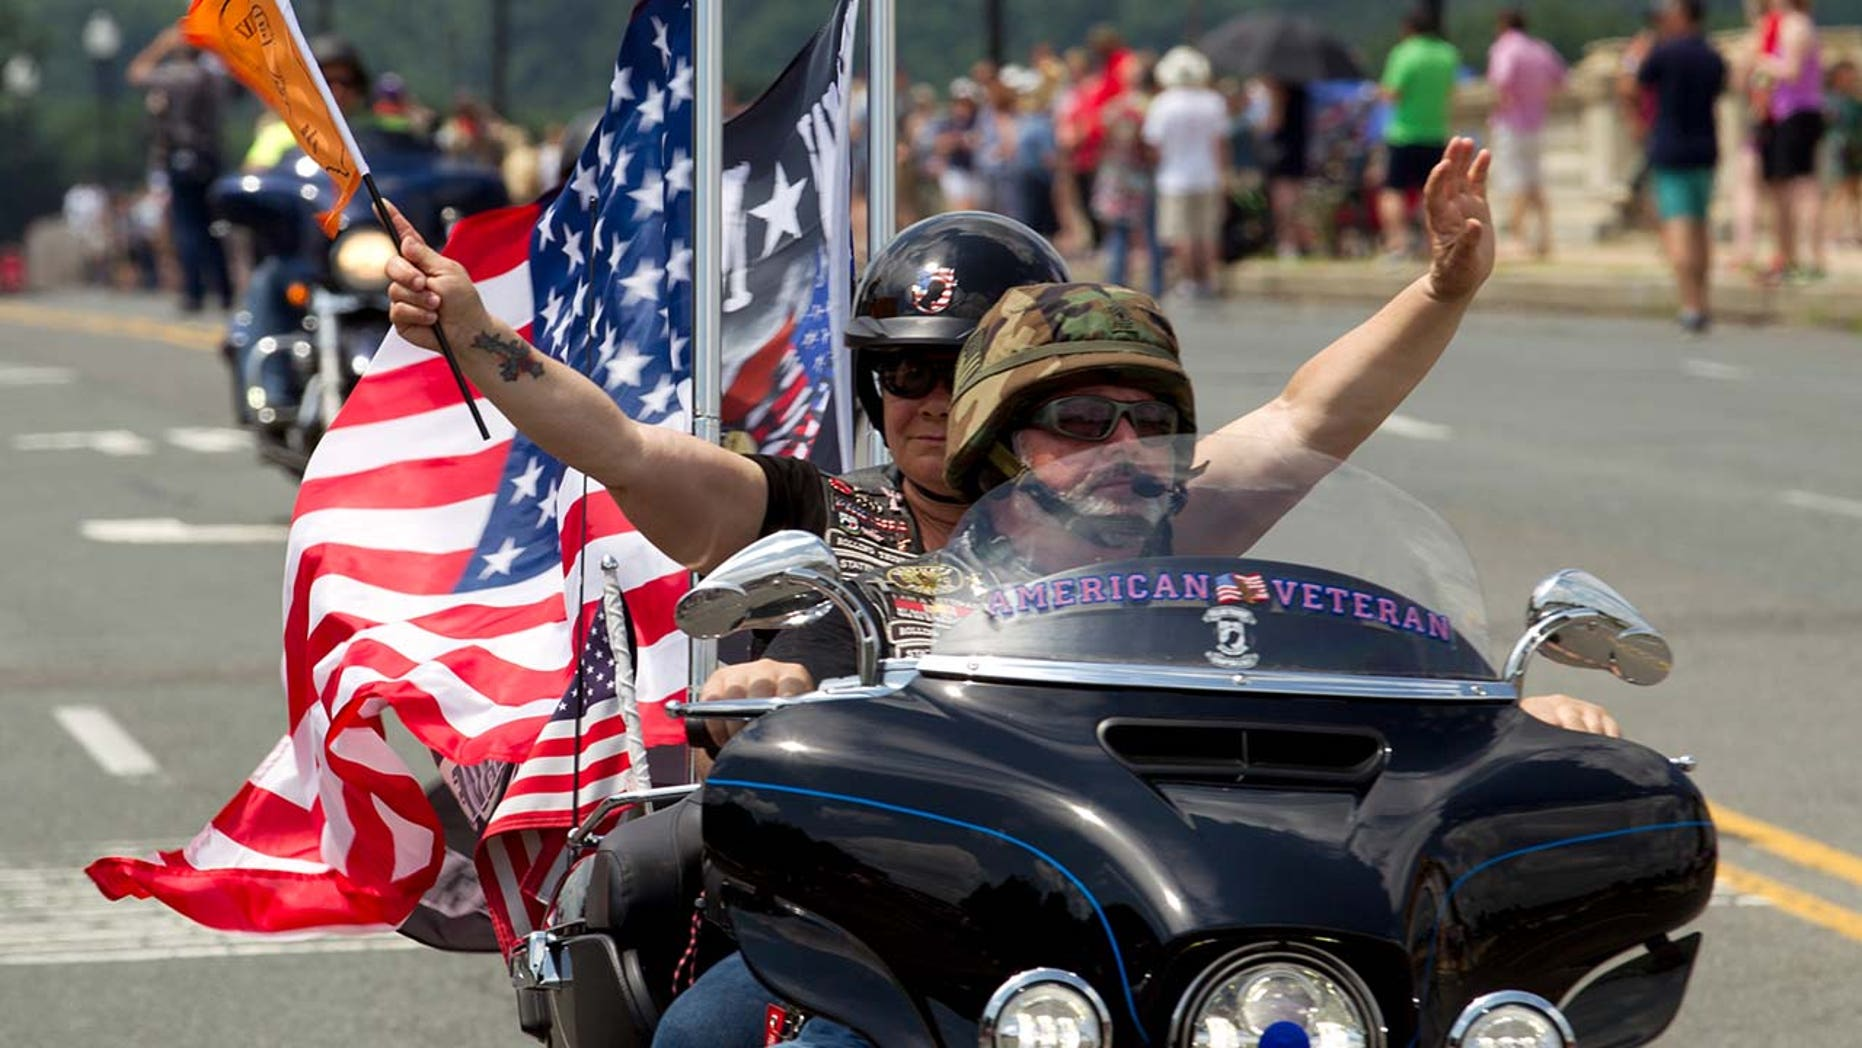 Participants in the Rolling Thunder motorcycle rally ride past Arlington Memorial Bridge ahead of Memorial Day in Washington.